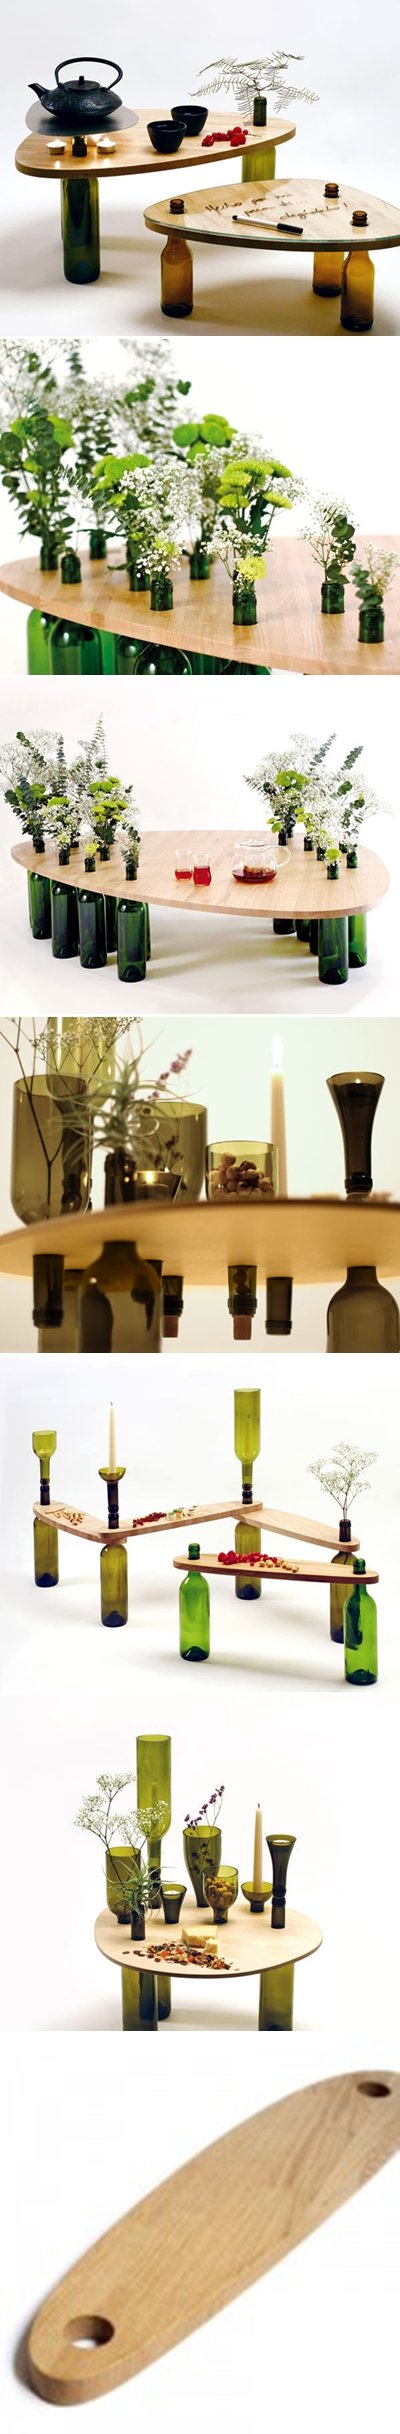 A great way to recycle wine bottles into picnic tables